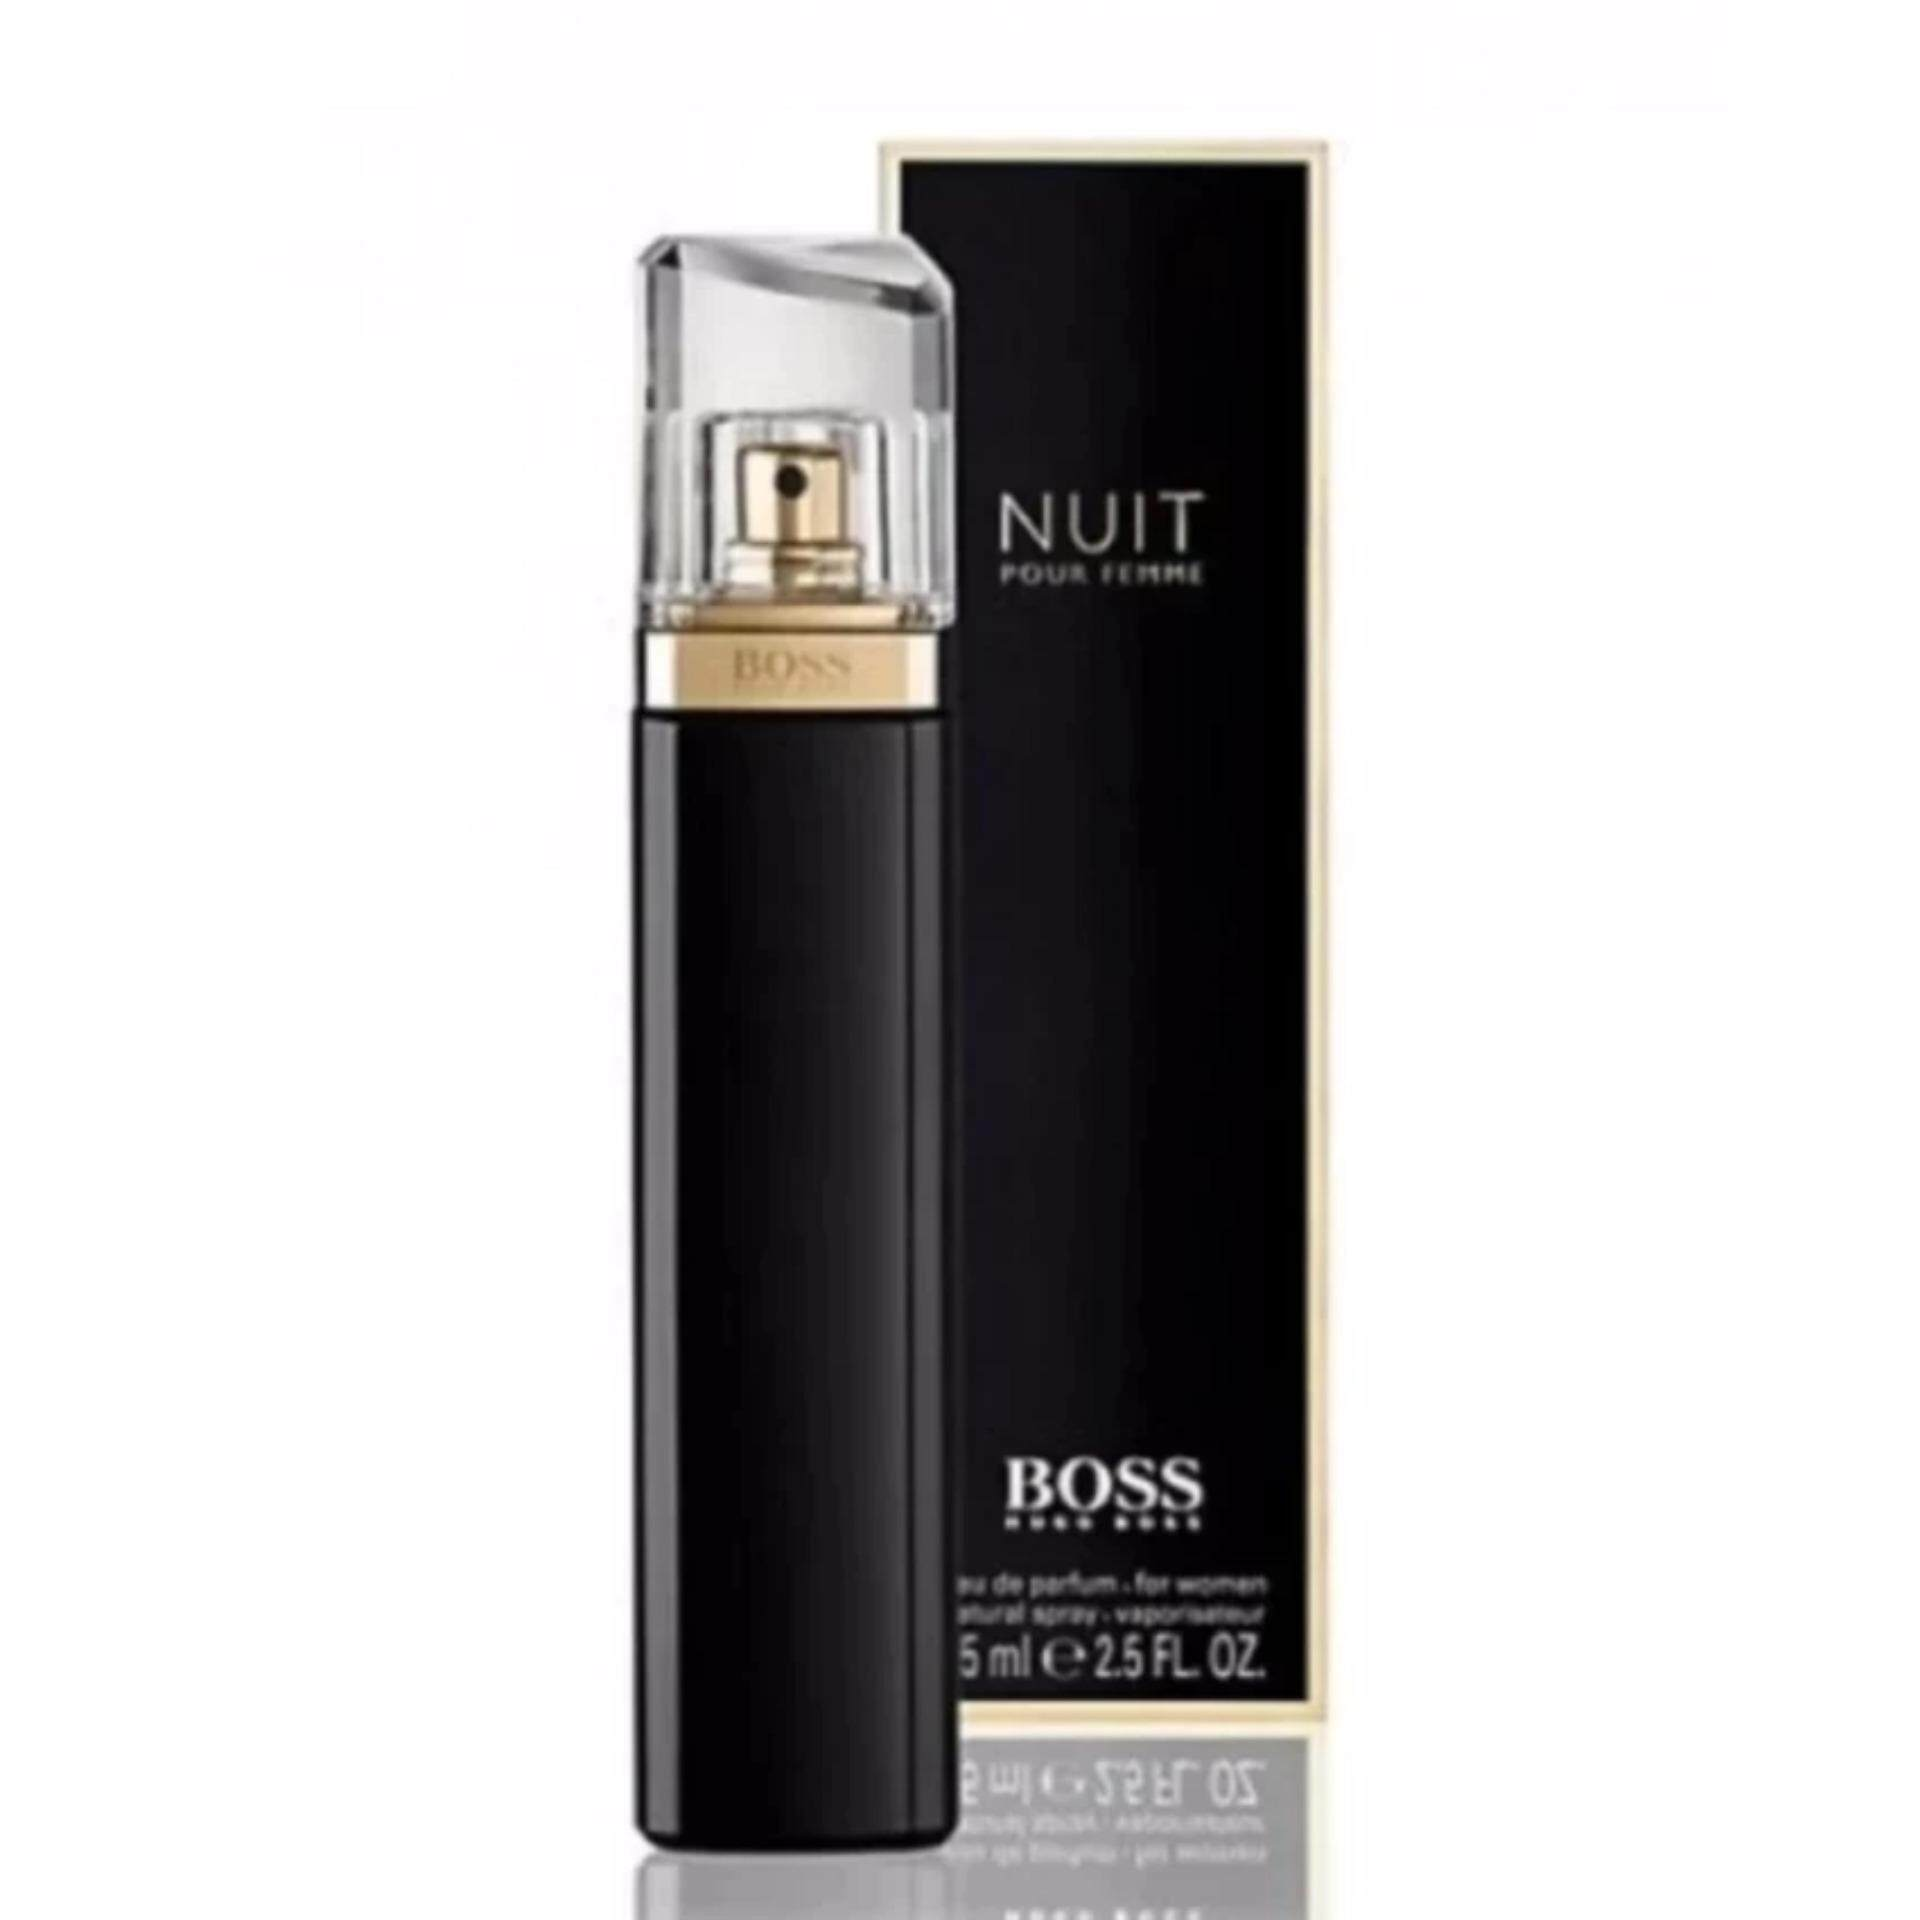 [Perfume King 5A]Nuit Pour Femme Intense by Hugo Boss for Women - EDP, 75ml